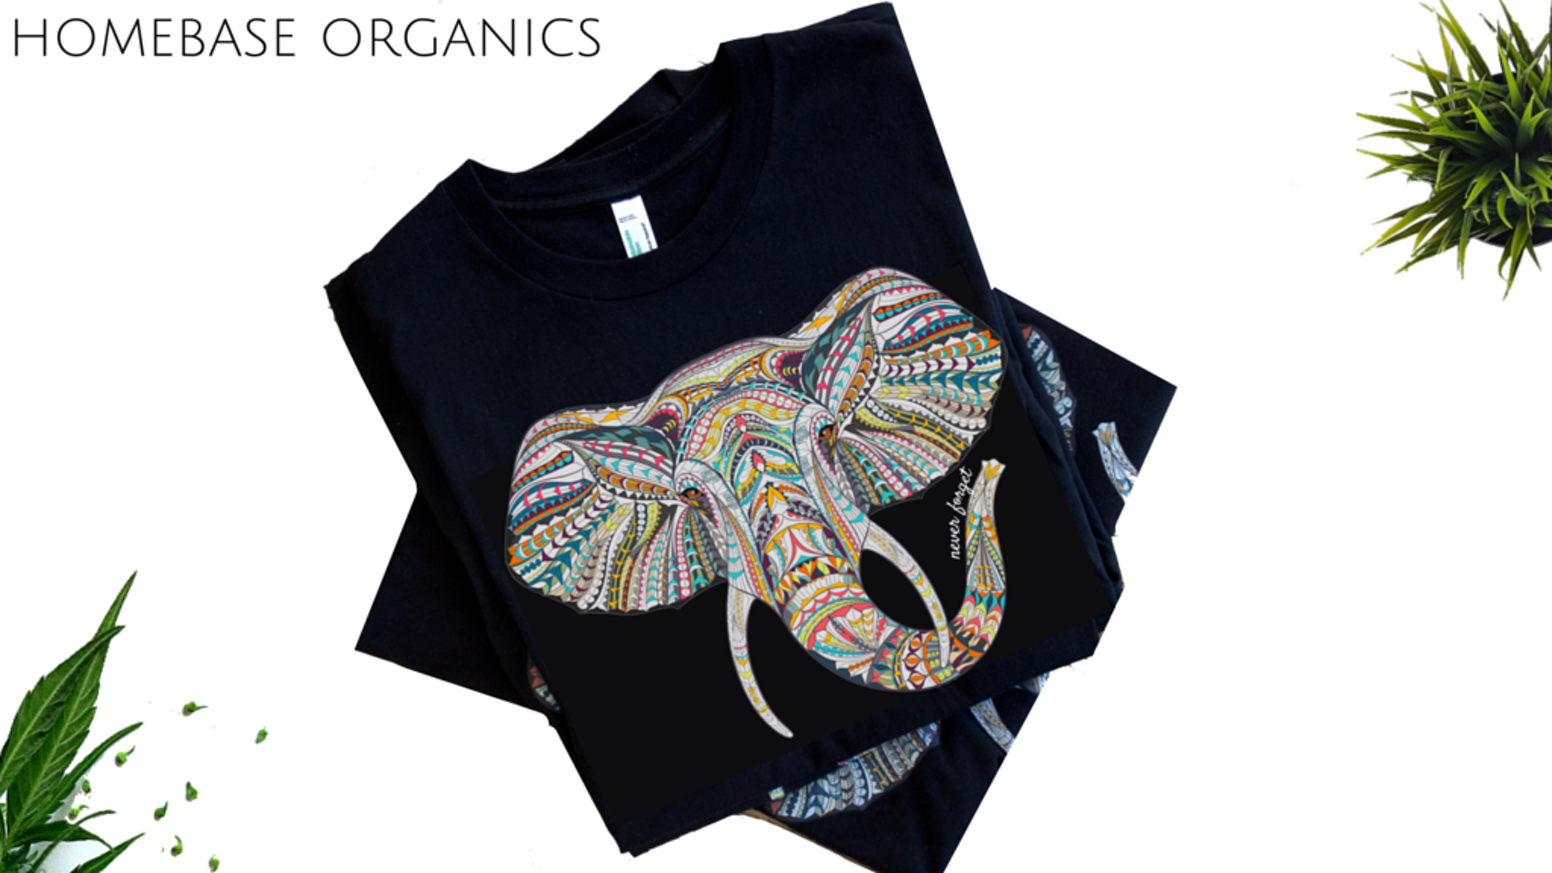 Stylistic illustrations of animals printed on sustainable clothing. Made with a purpose, in the USA.